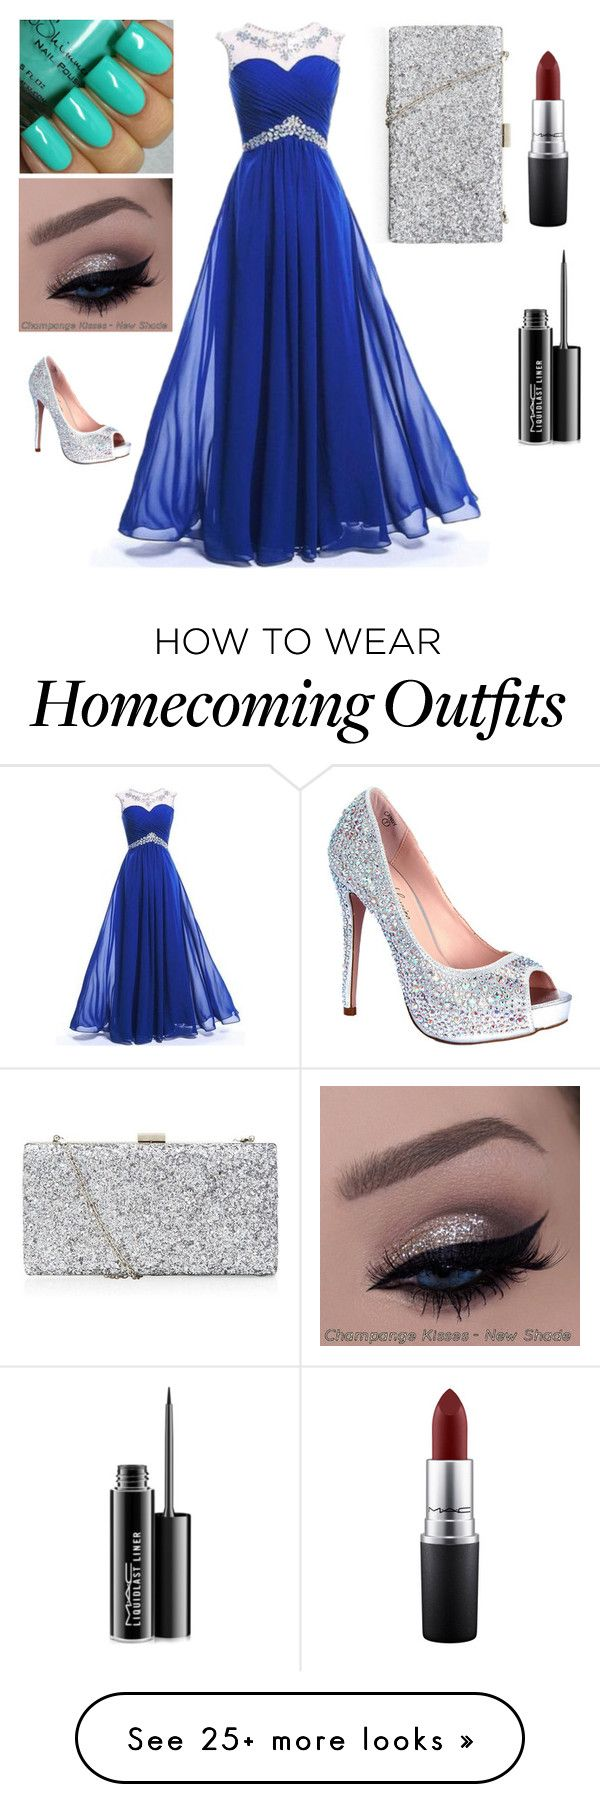 """Homecoming"" by kayleighmw on Polyvore featuring MAC Cosmetics and Lauren Lorraine"